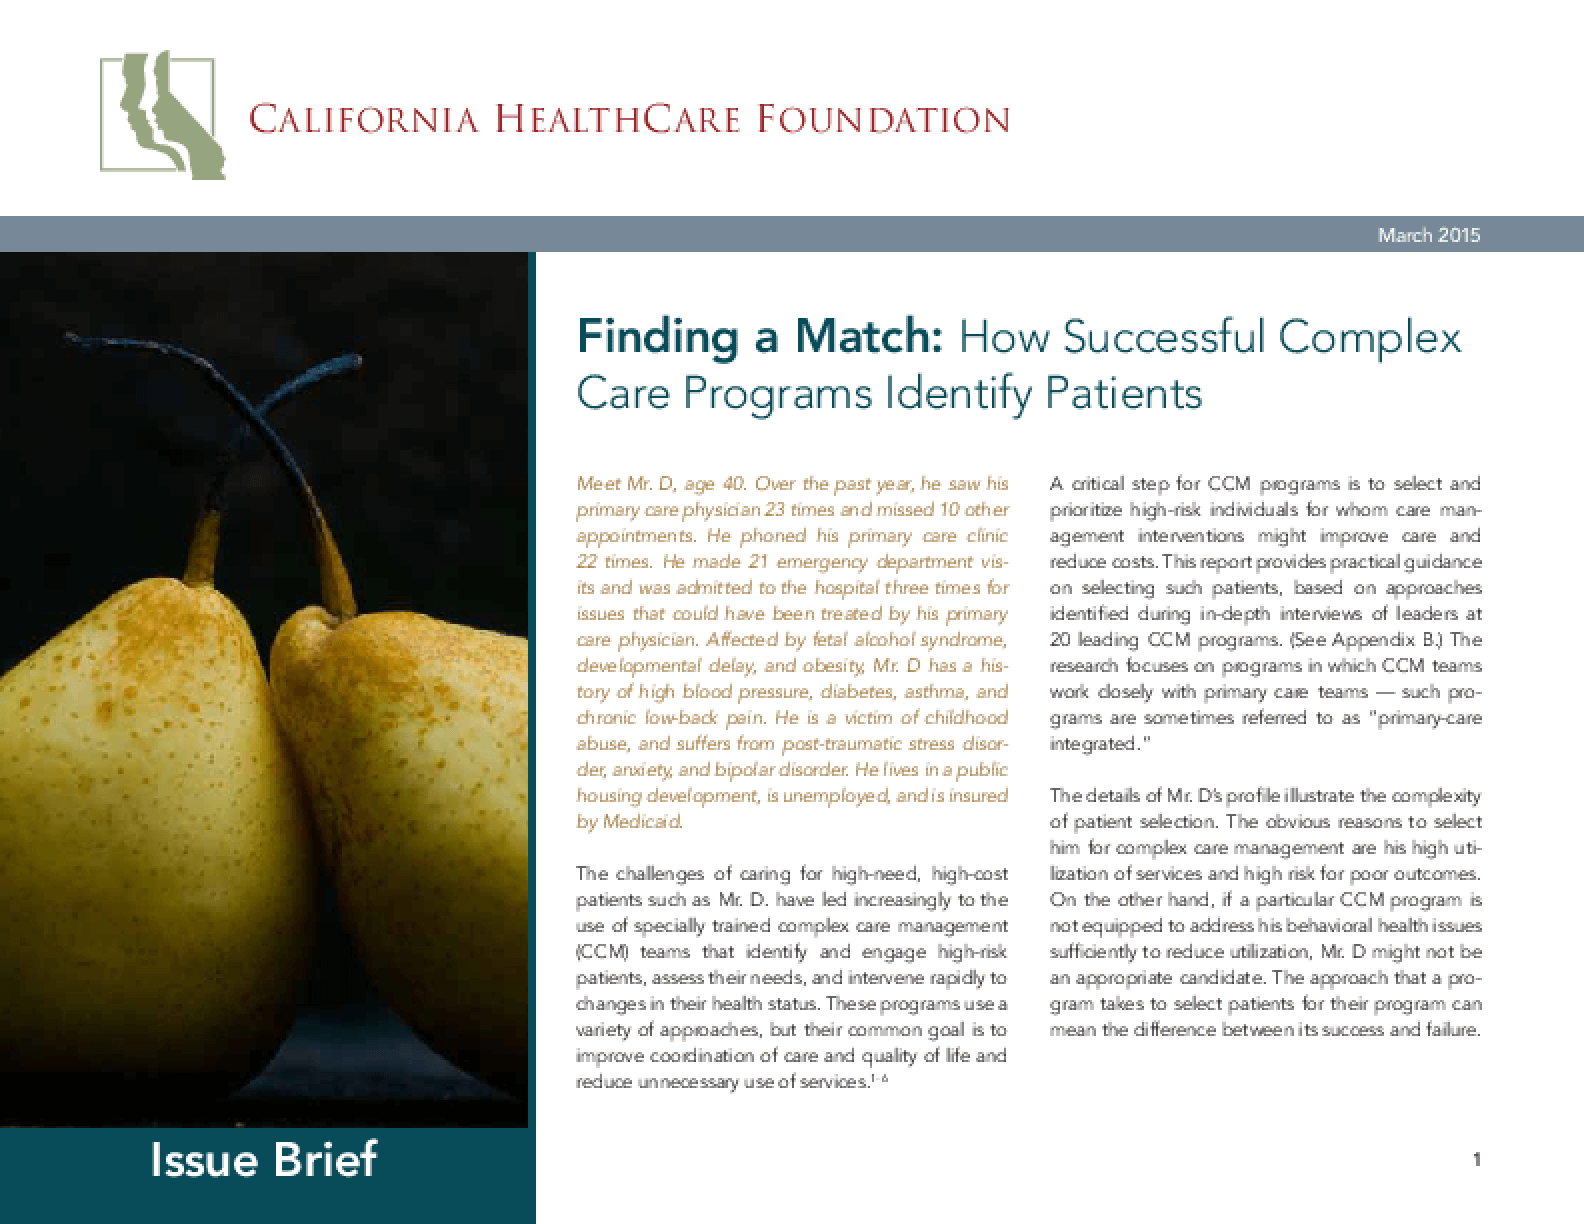 Finding A Match: How Successful Complex Care Programs Identify Patients